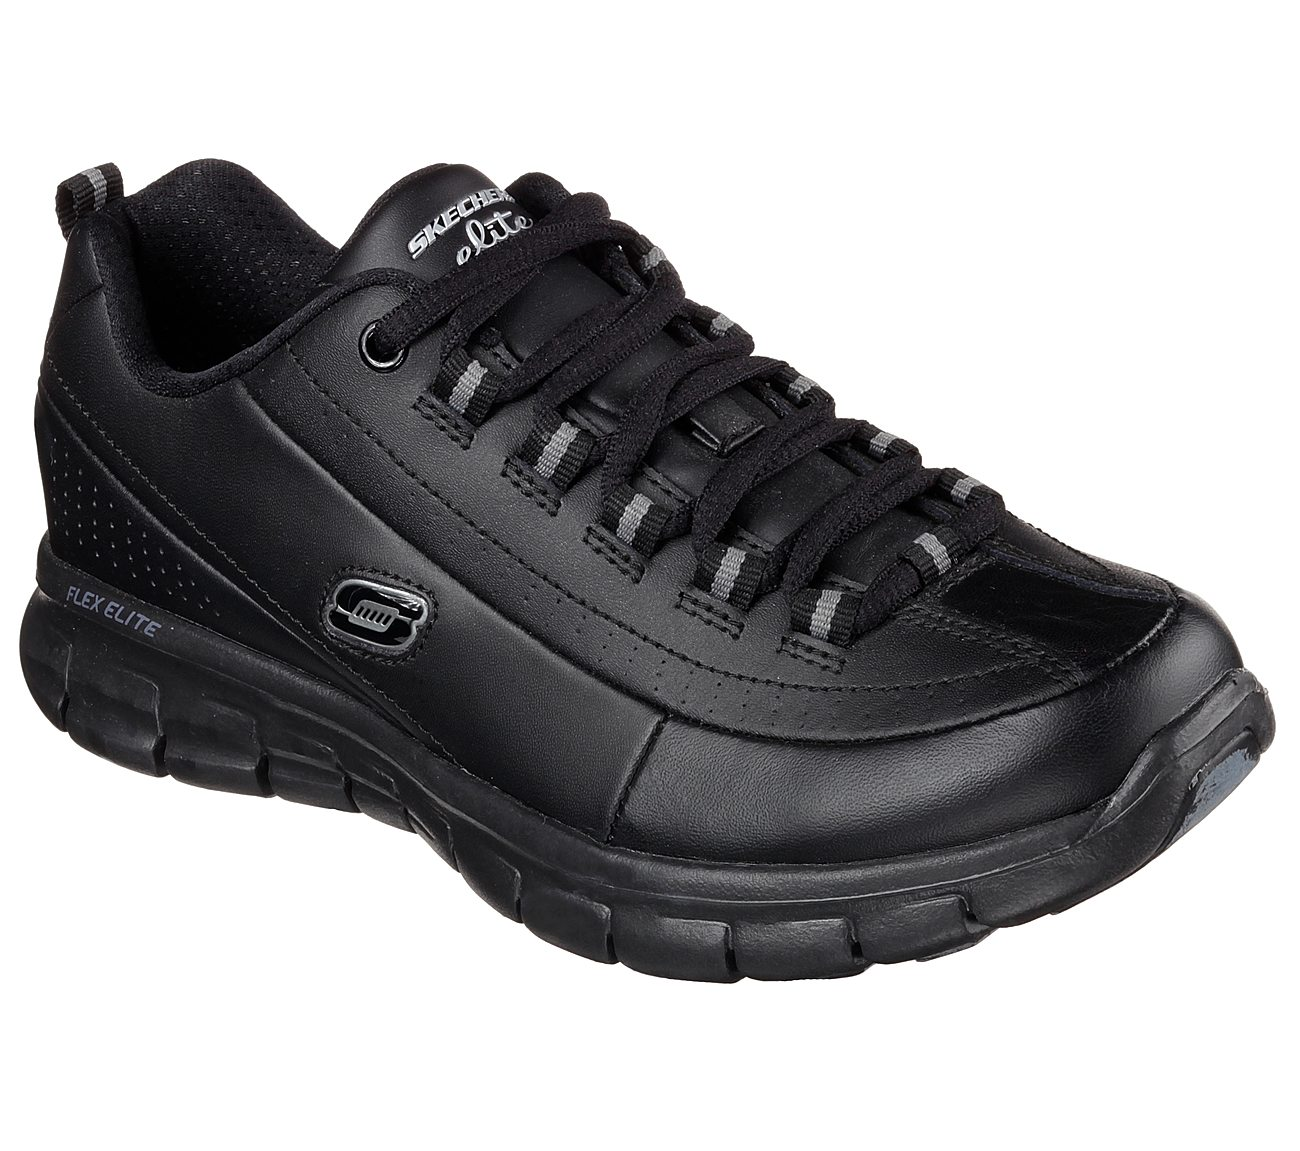 cc377f6452b1 Buy SKECHERS Synergy - Elite Caliber Sport Shoes only  70.00